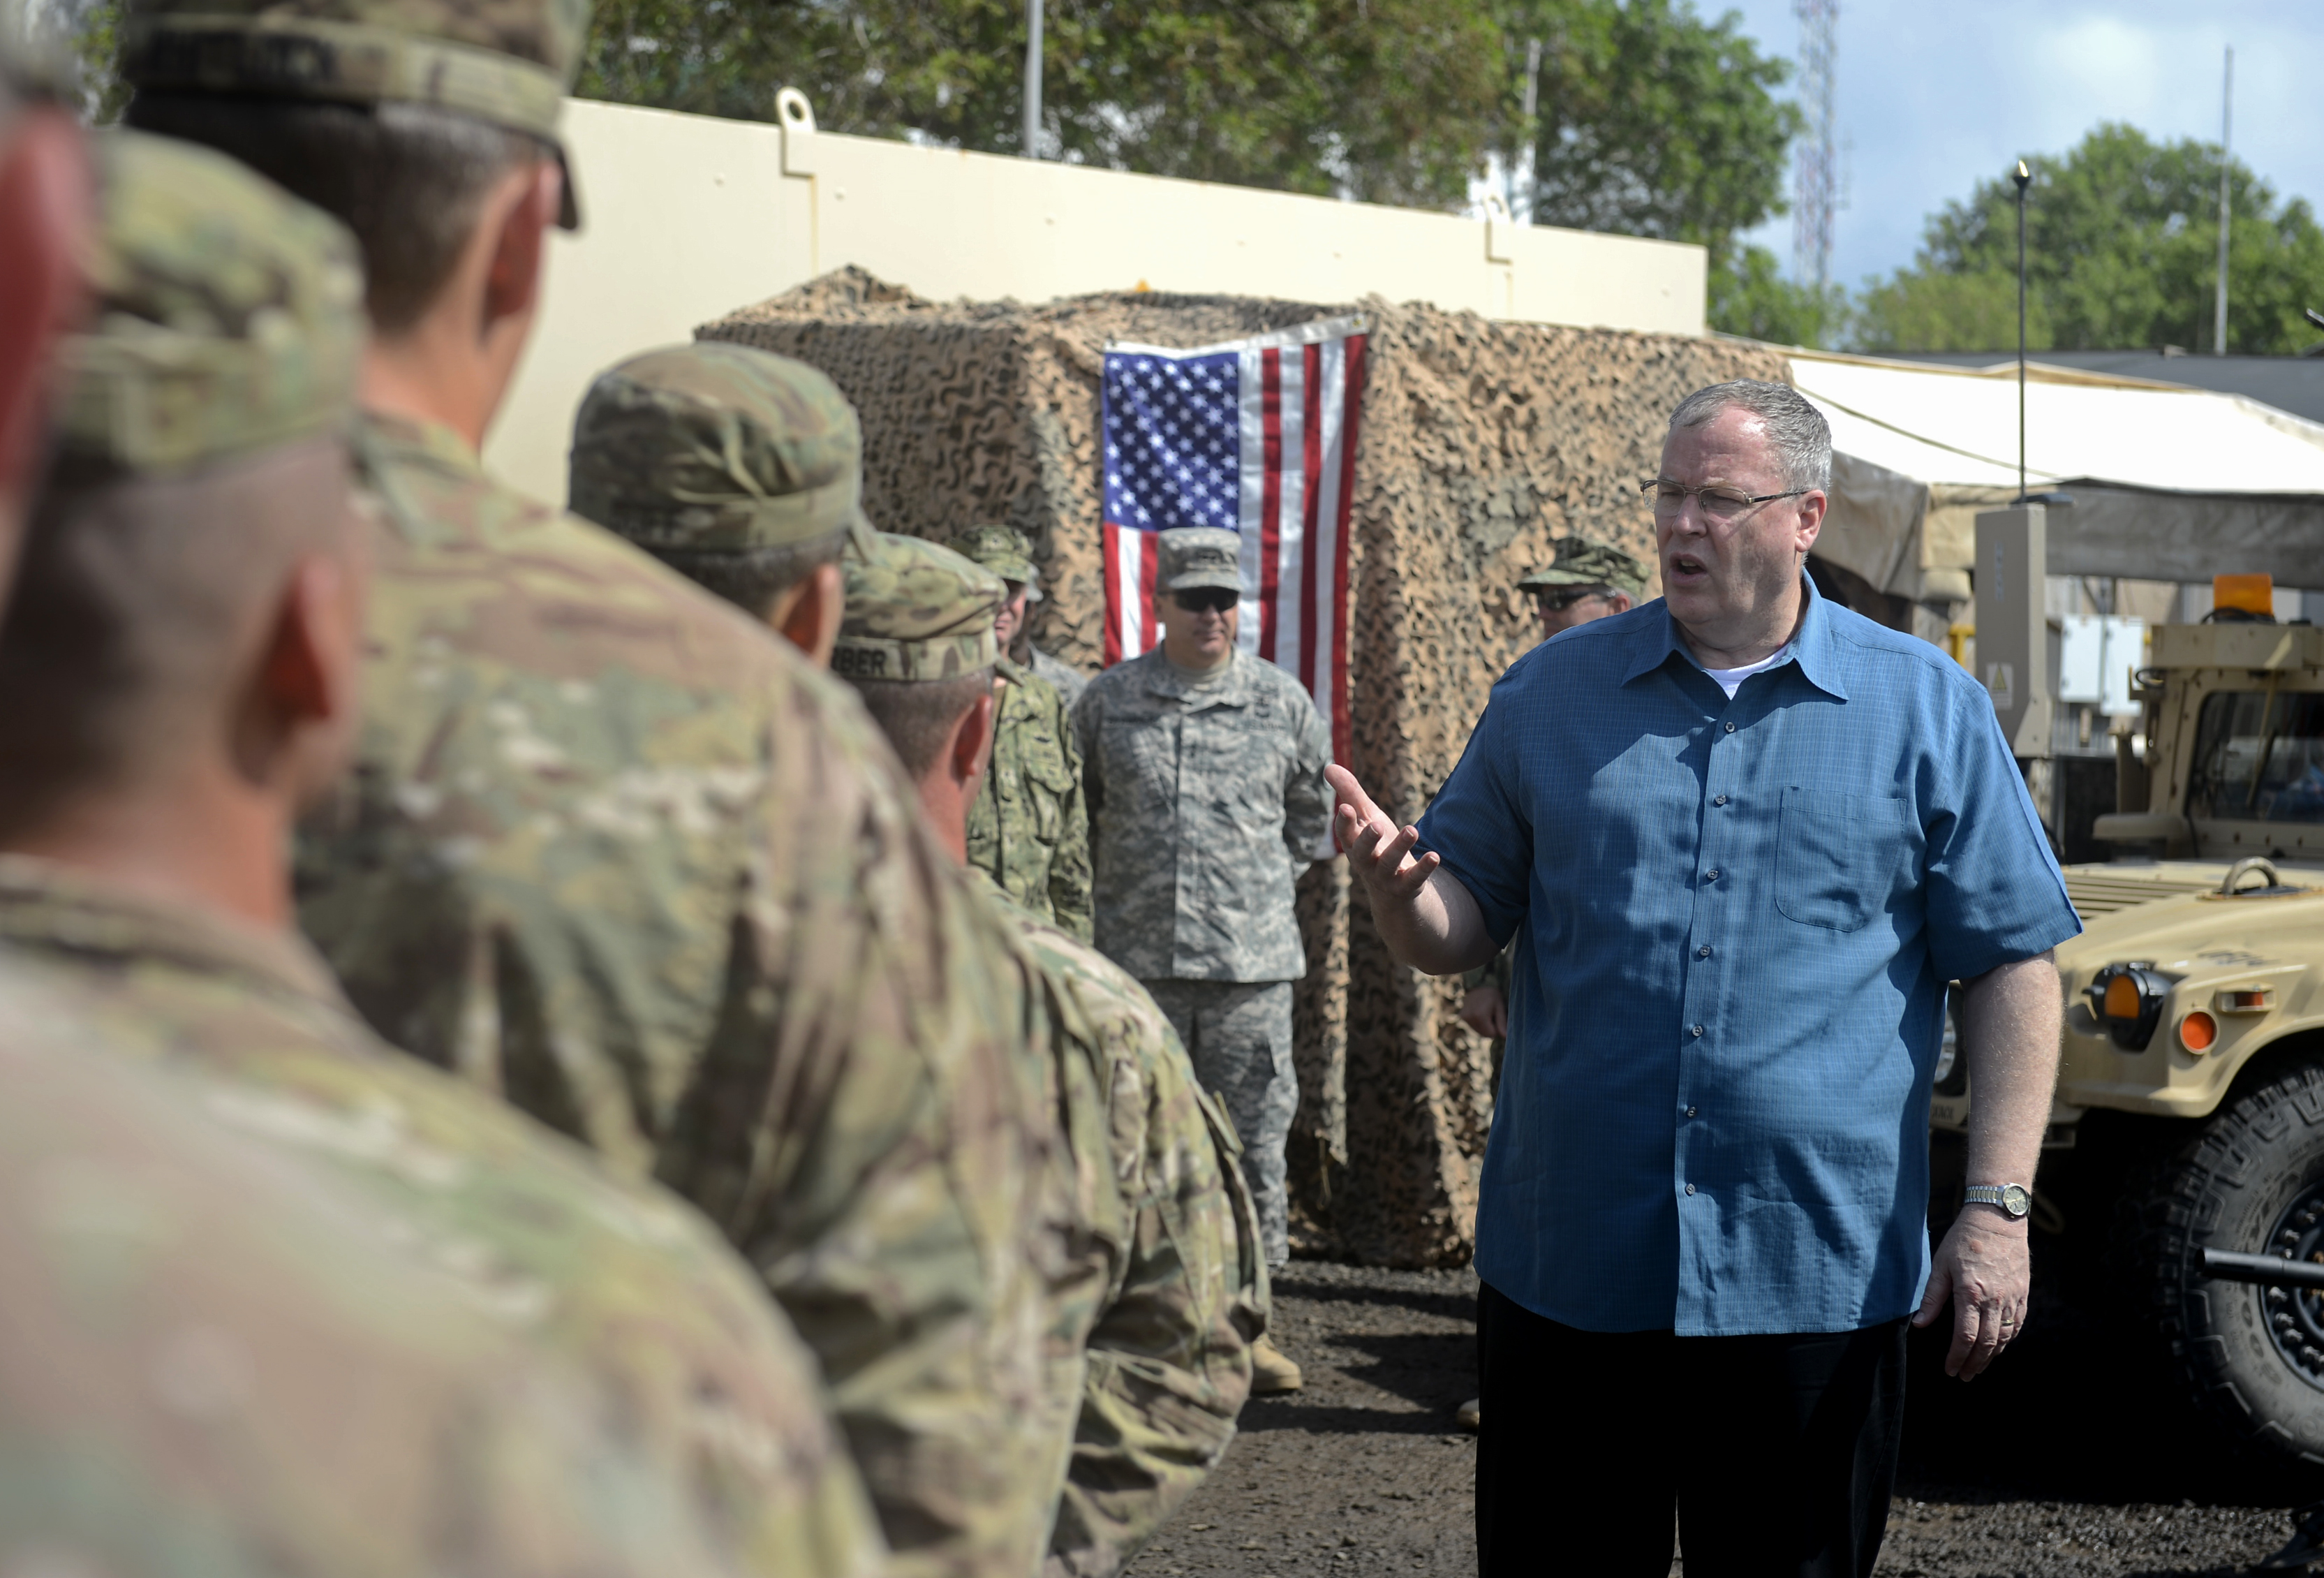 Deputy Secretary of Defense Bob Work speaks with soldiers from Delta Co. 2-124, Florida Army National Guard Nov. 26, 2015, at Camp Lemonnier, Djibouti. While visiting the quick response force unit, Work discussed changes across the Department of Defense and answered questions from many of the soldiers. (U.S. Air Force photo by Senior Airman Peter Thompson)